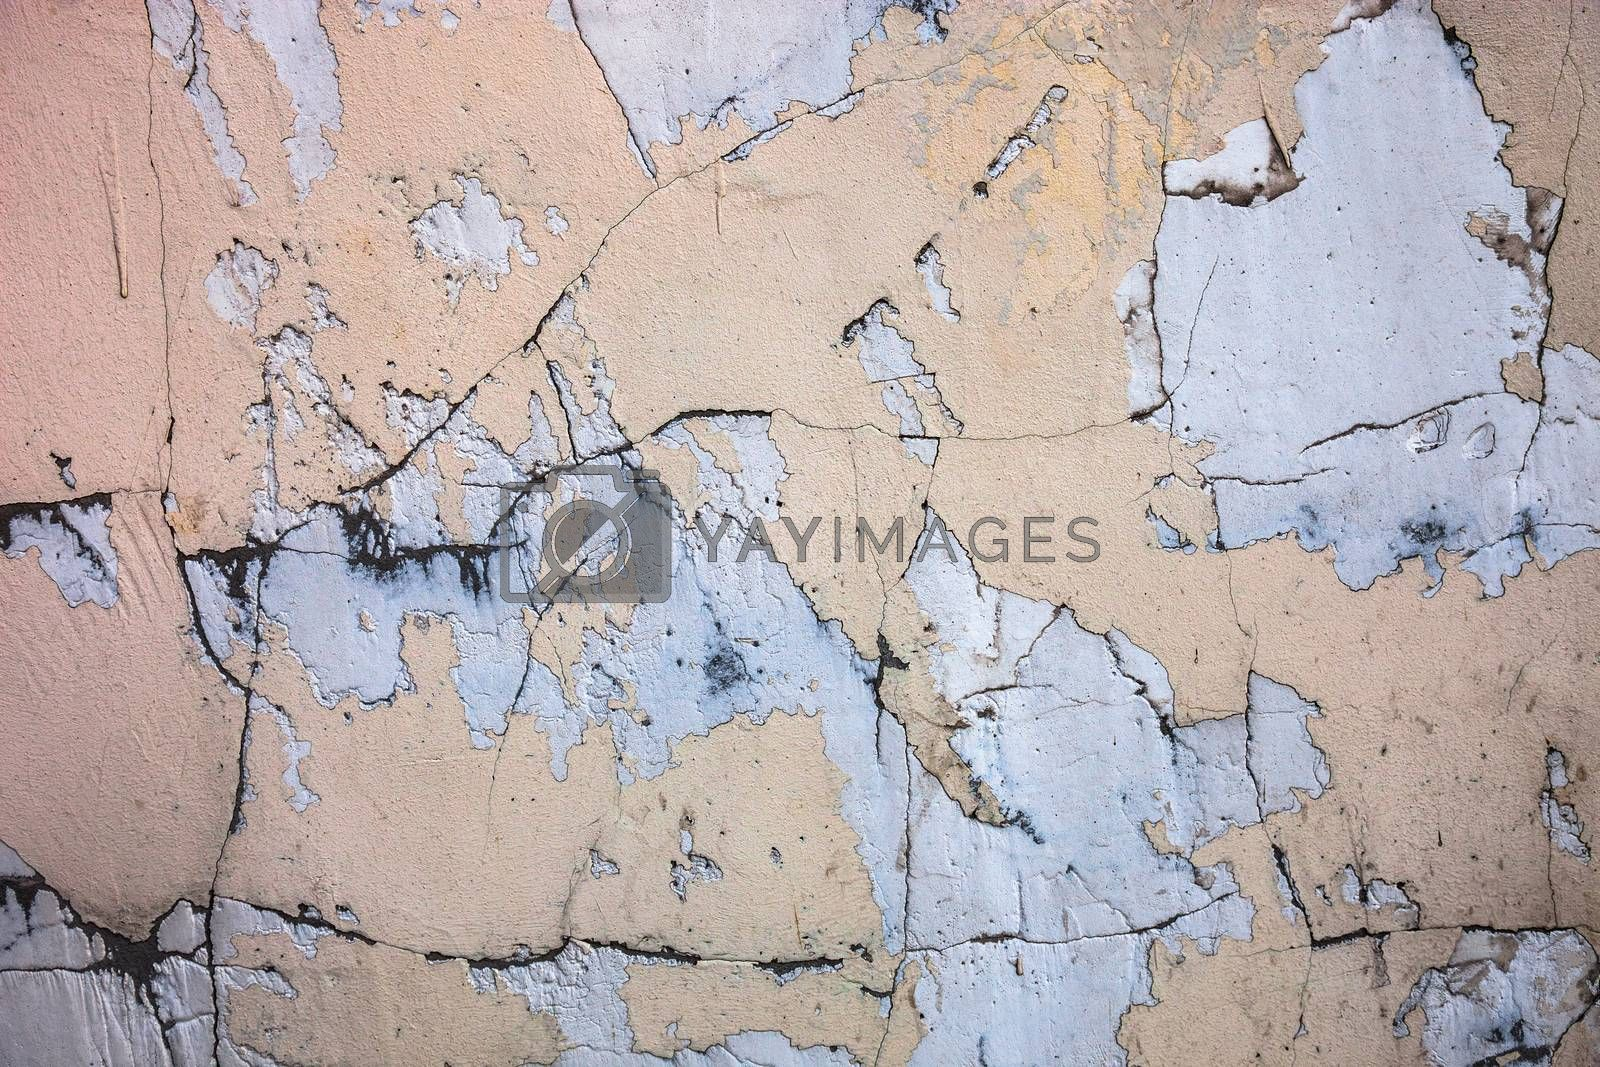 Cracked concrete surface with the remains of sandy-tan paint by rootstocks